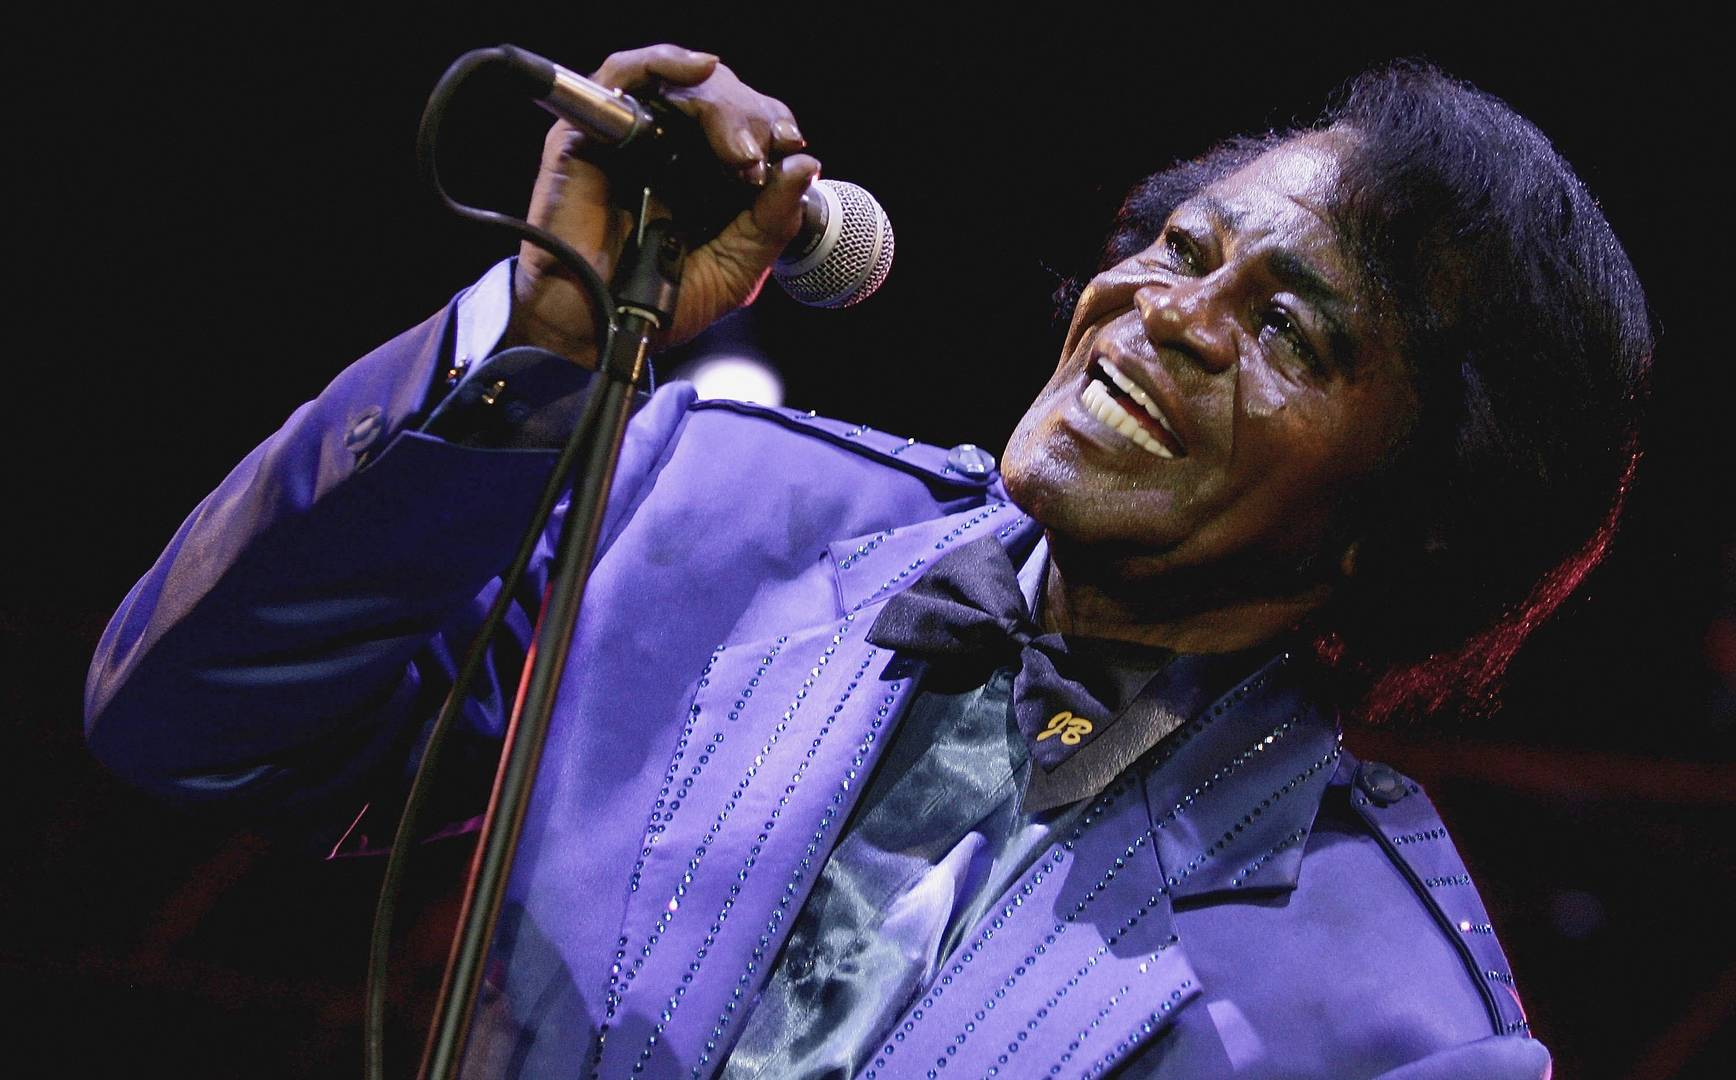 James Brown's Family Reportedly Seeking Criminal Investigation Into Singer's Death